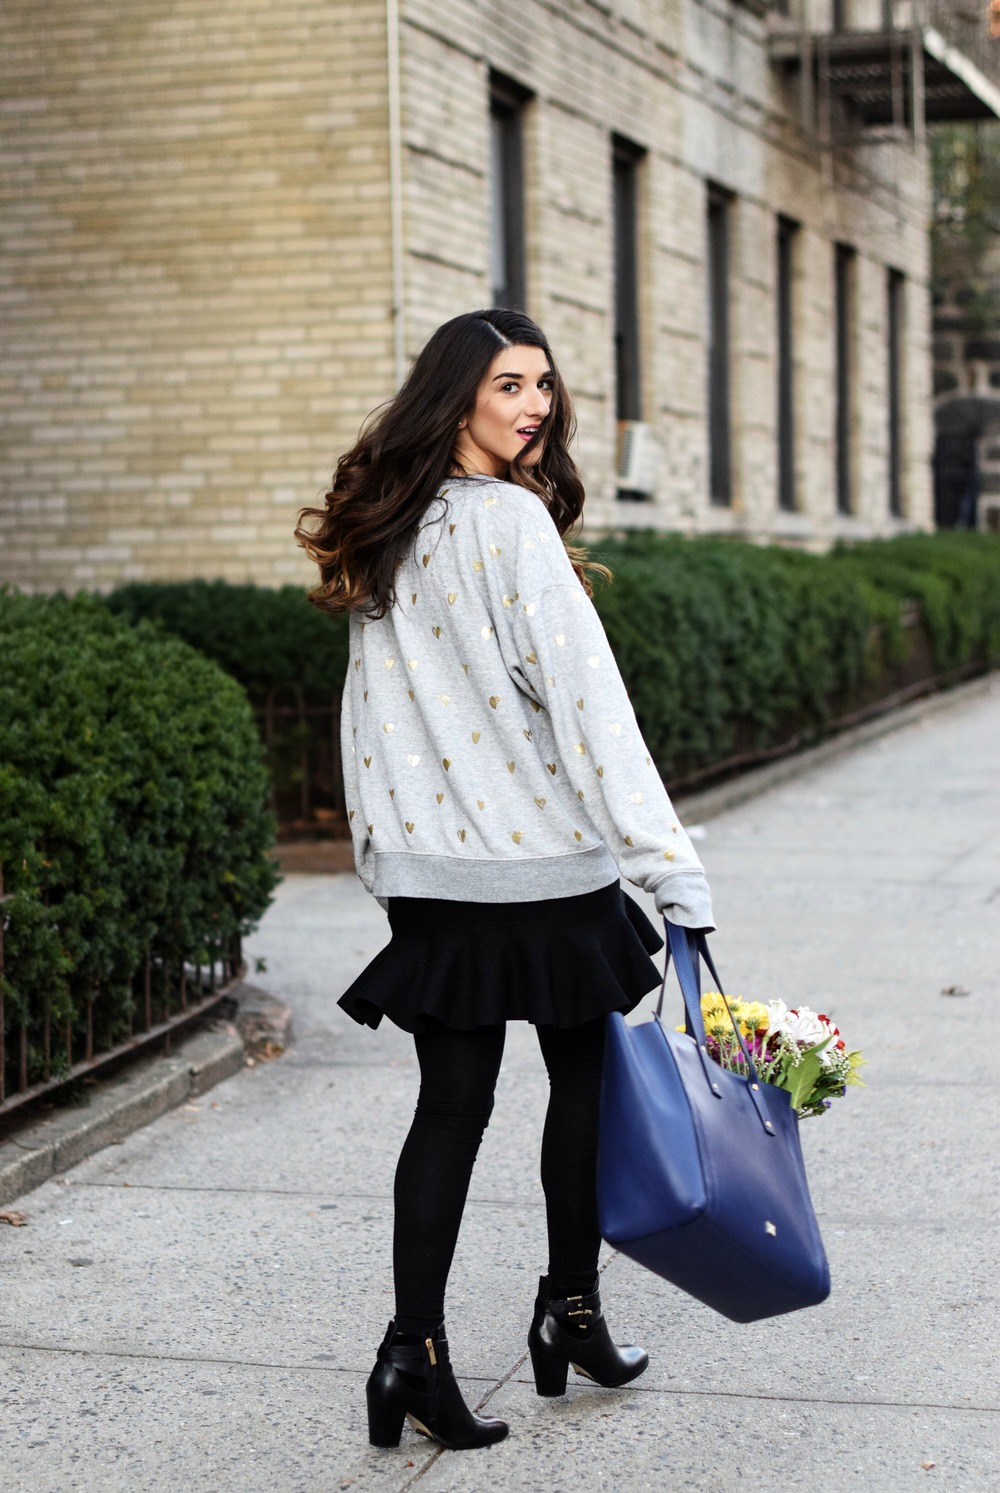 Oversized Sweatshirt Ivanka Trump Soho Tote Louboutins & Love Fashion Blog Esther Santer NYC Street Style Blogger Nordstrom Black Booties Blue Bag Pocketbook Purse Shopping What To Wear Jcrew Winter Inspo Model Girl Photoshoot Hairstyle Skirt Flowers.jpg